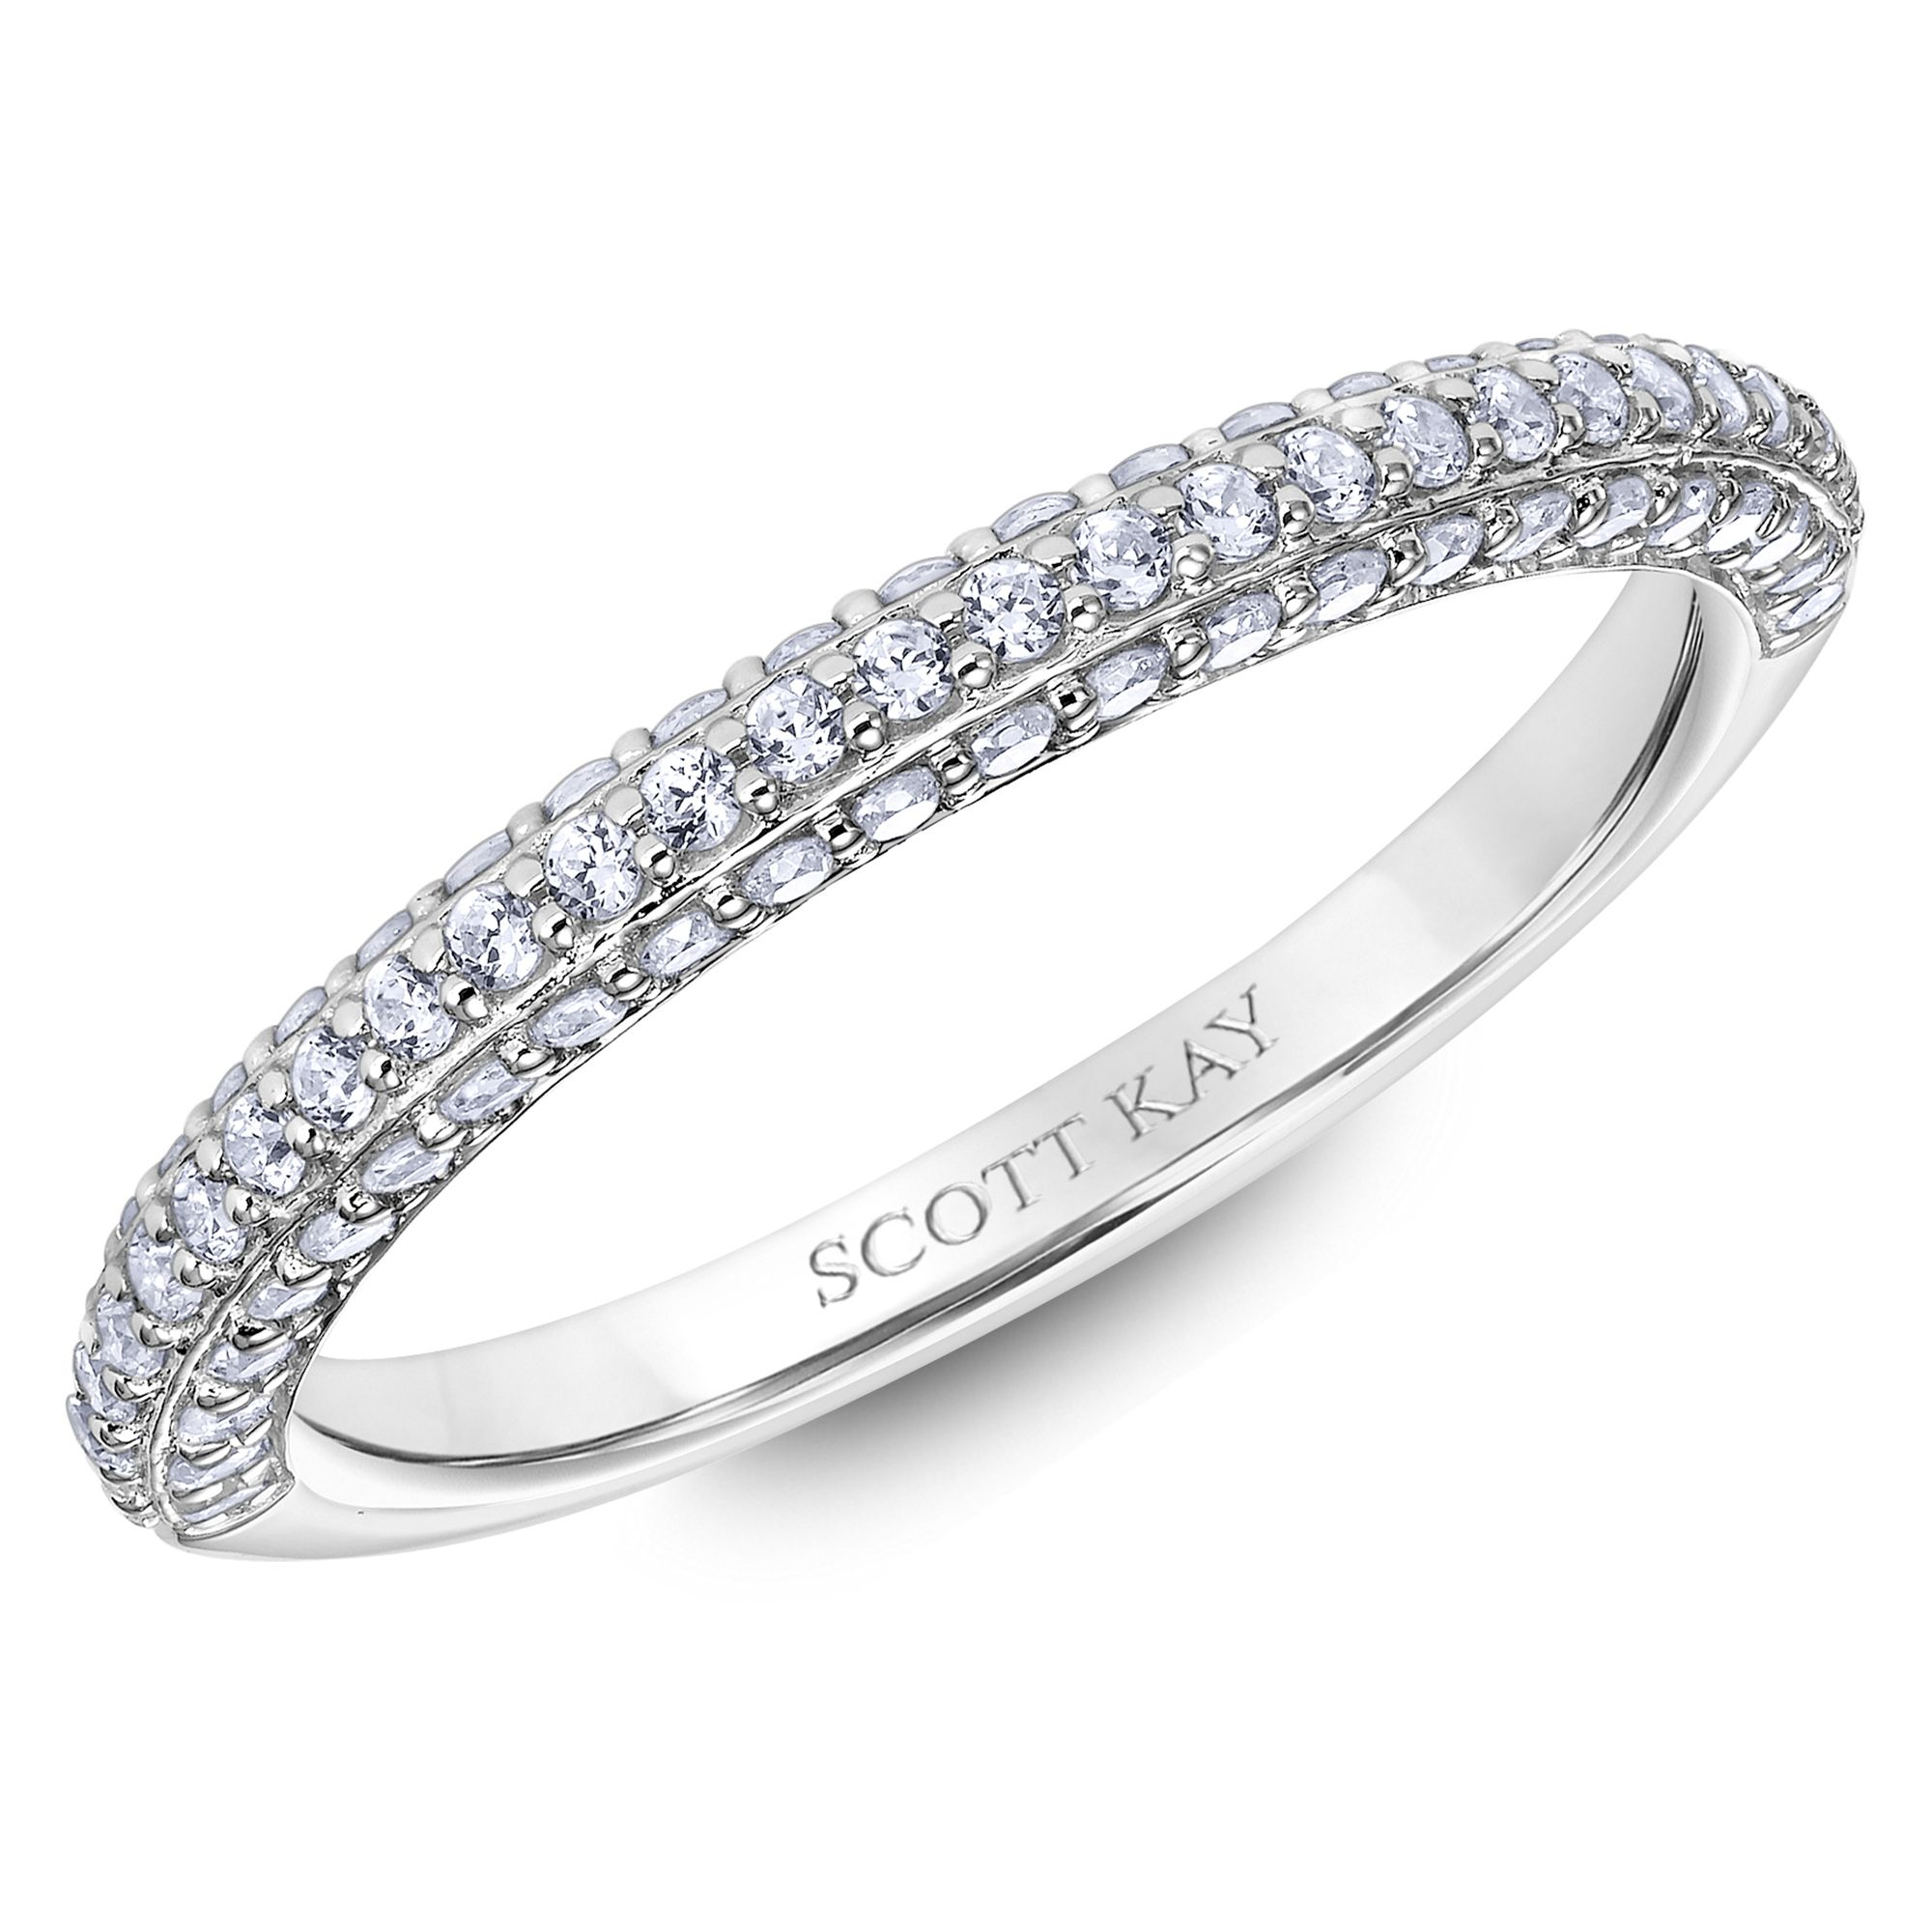 B2670R510 Womens wedding bands, Diamond wedding bands